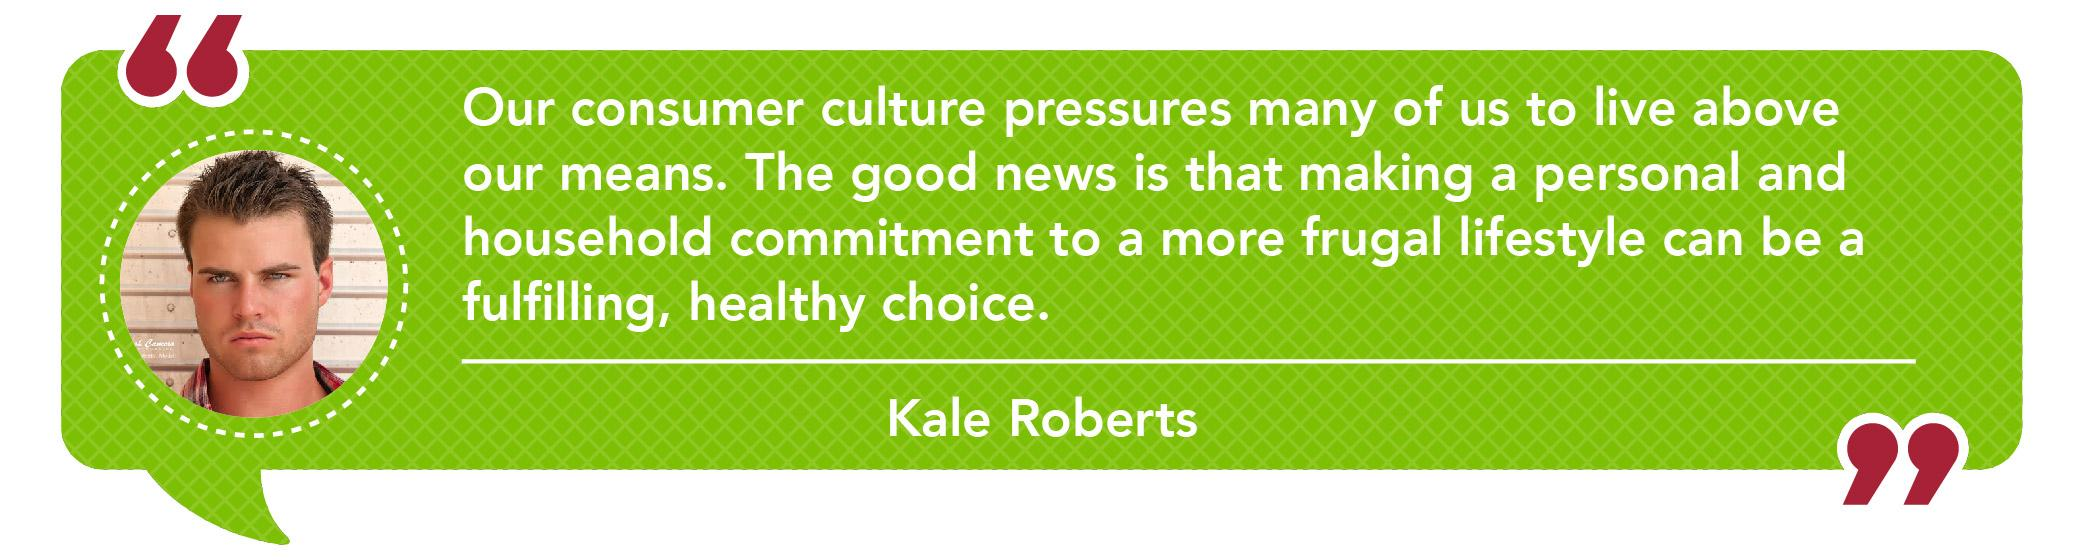 Kale Roberts quote